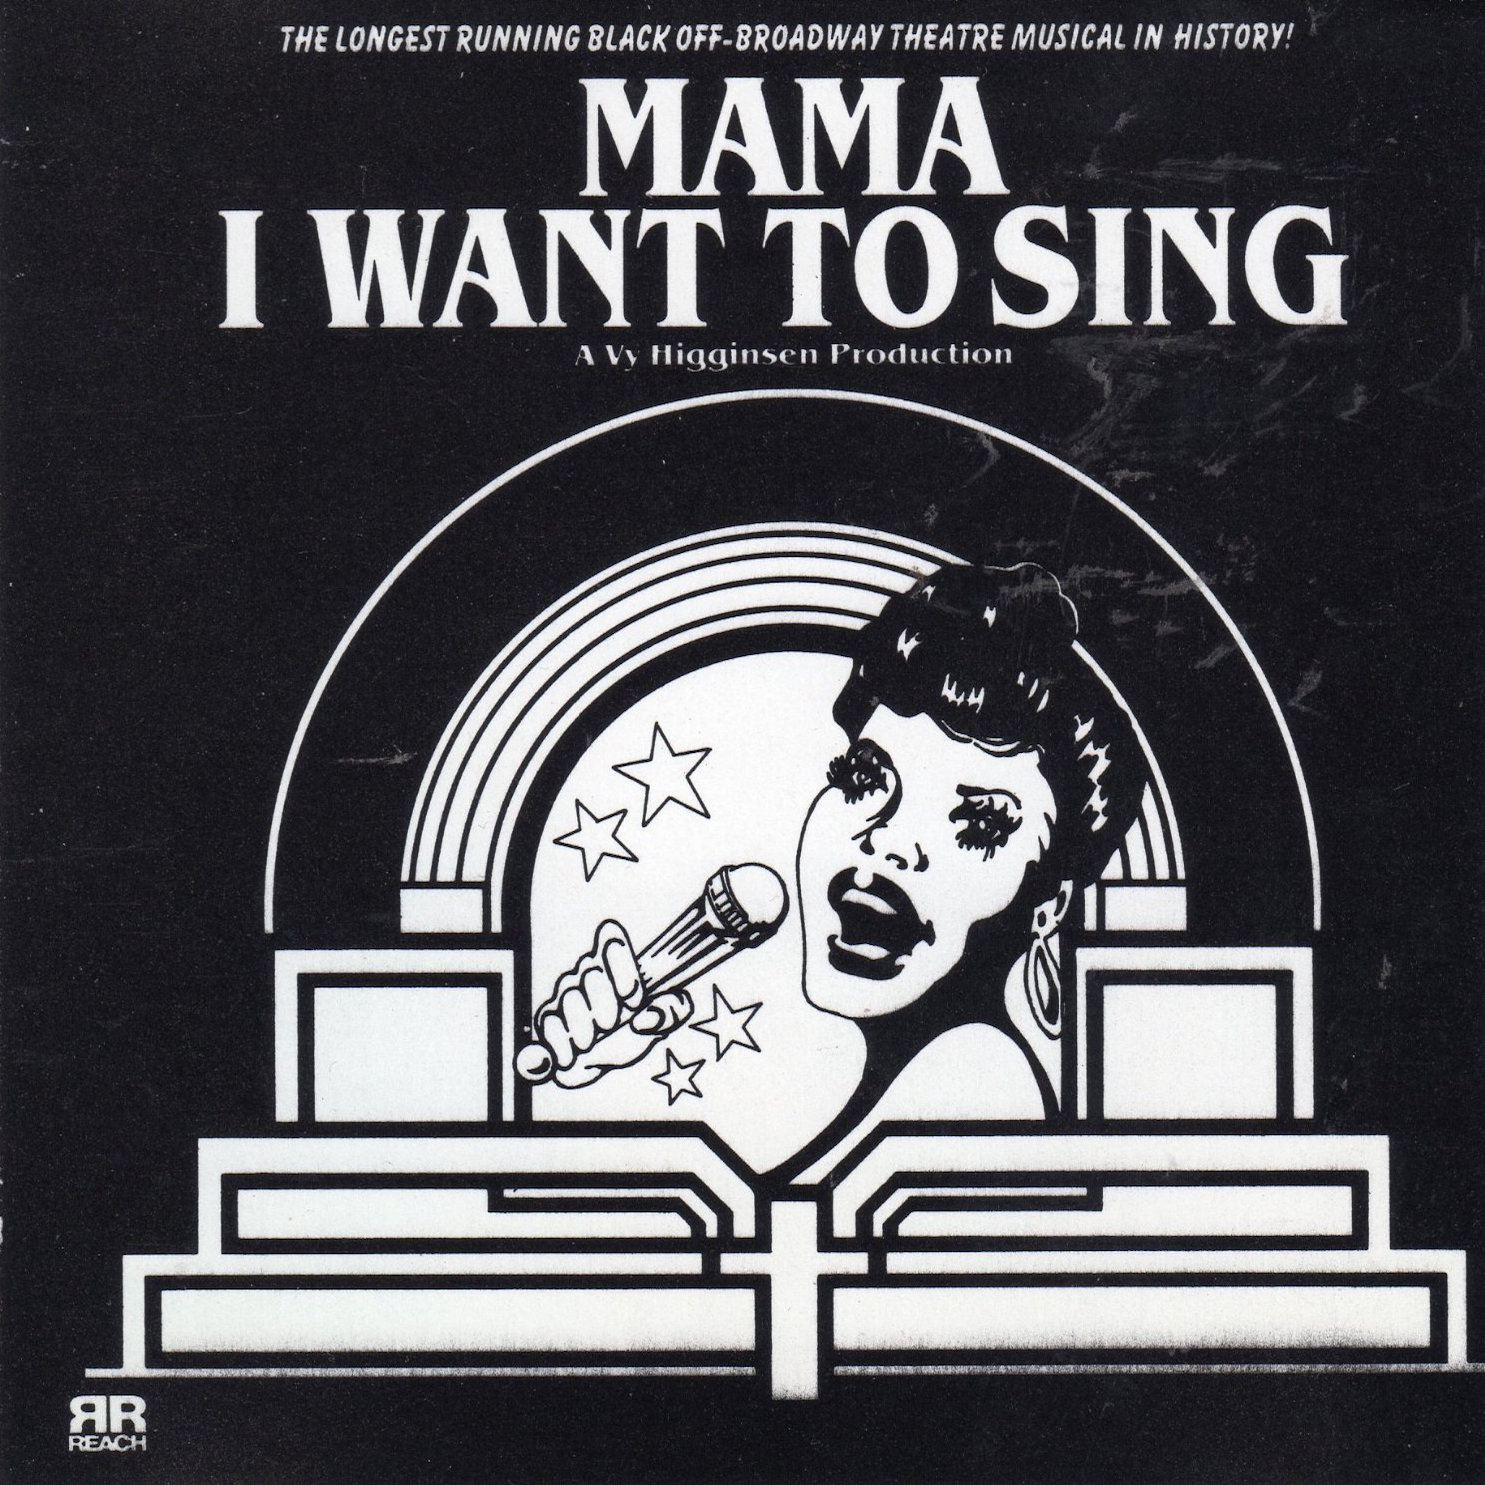 22-vy-higginse-mama-i-want-to-sing.jpg